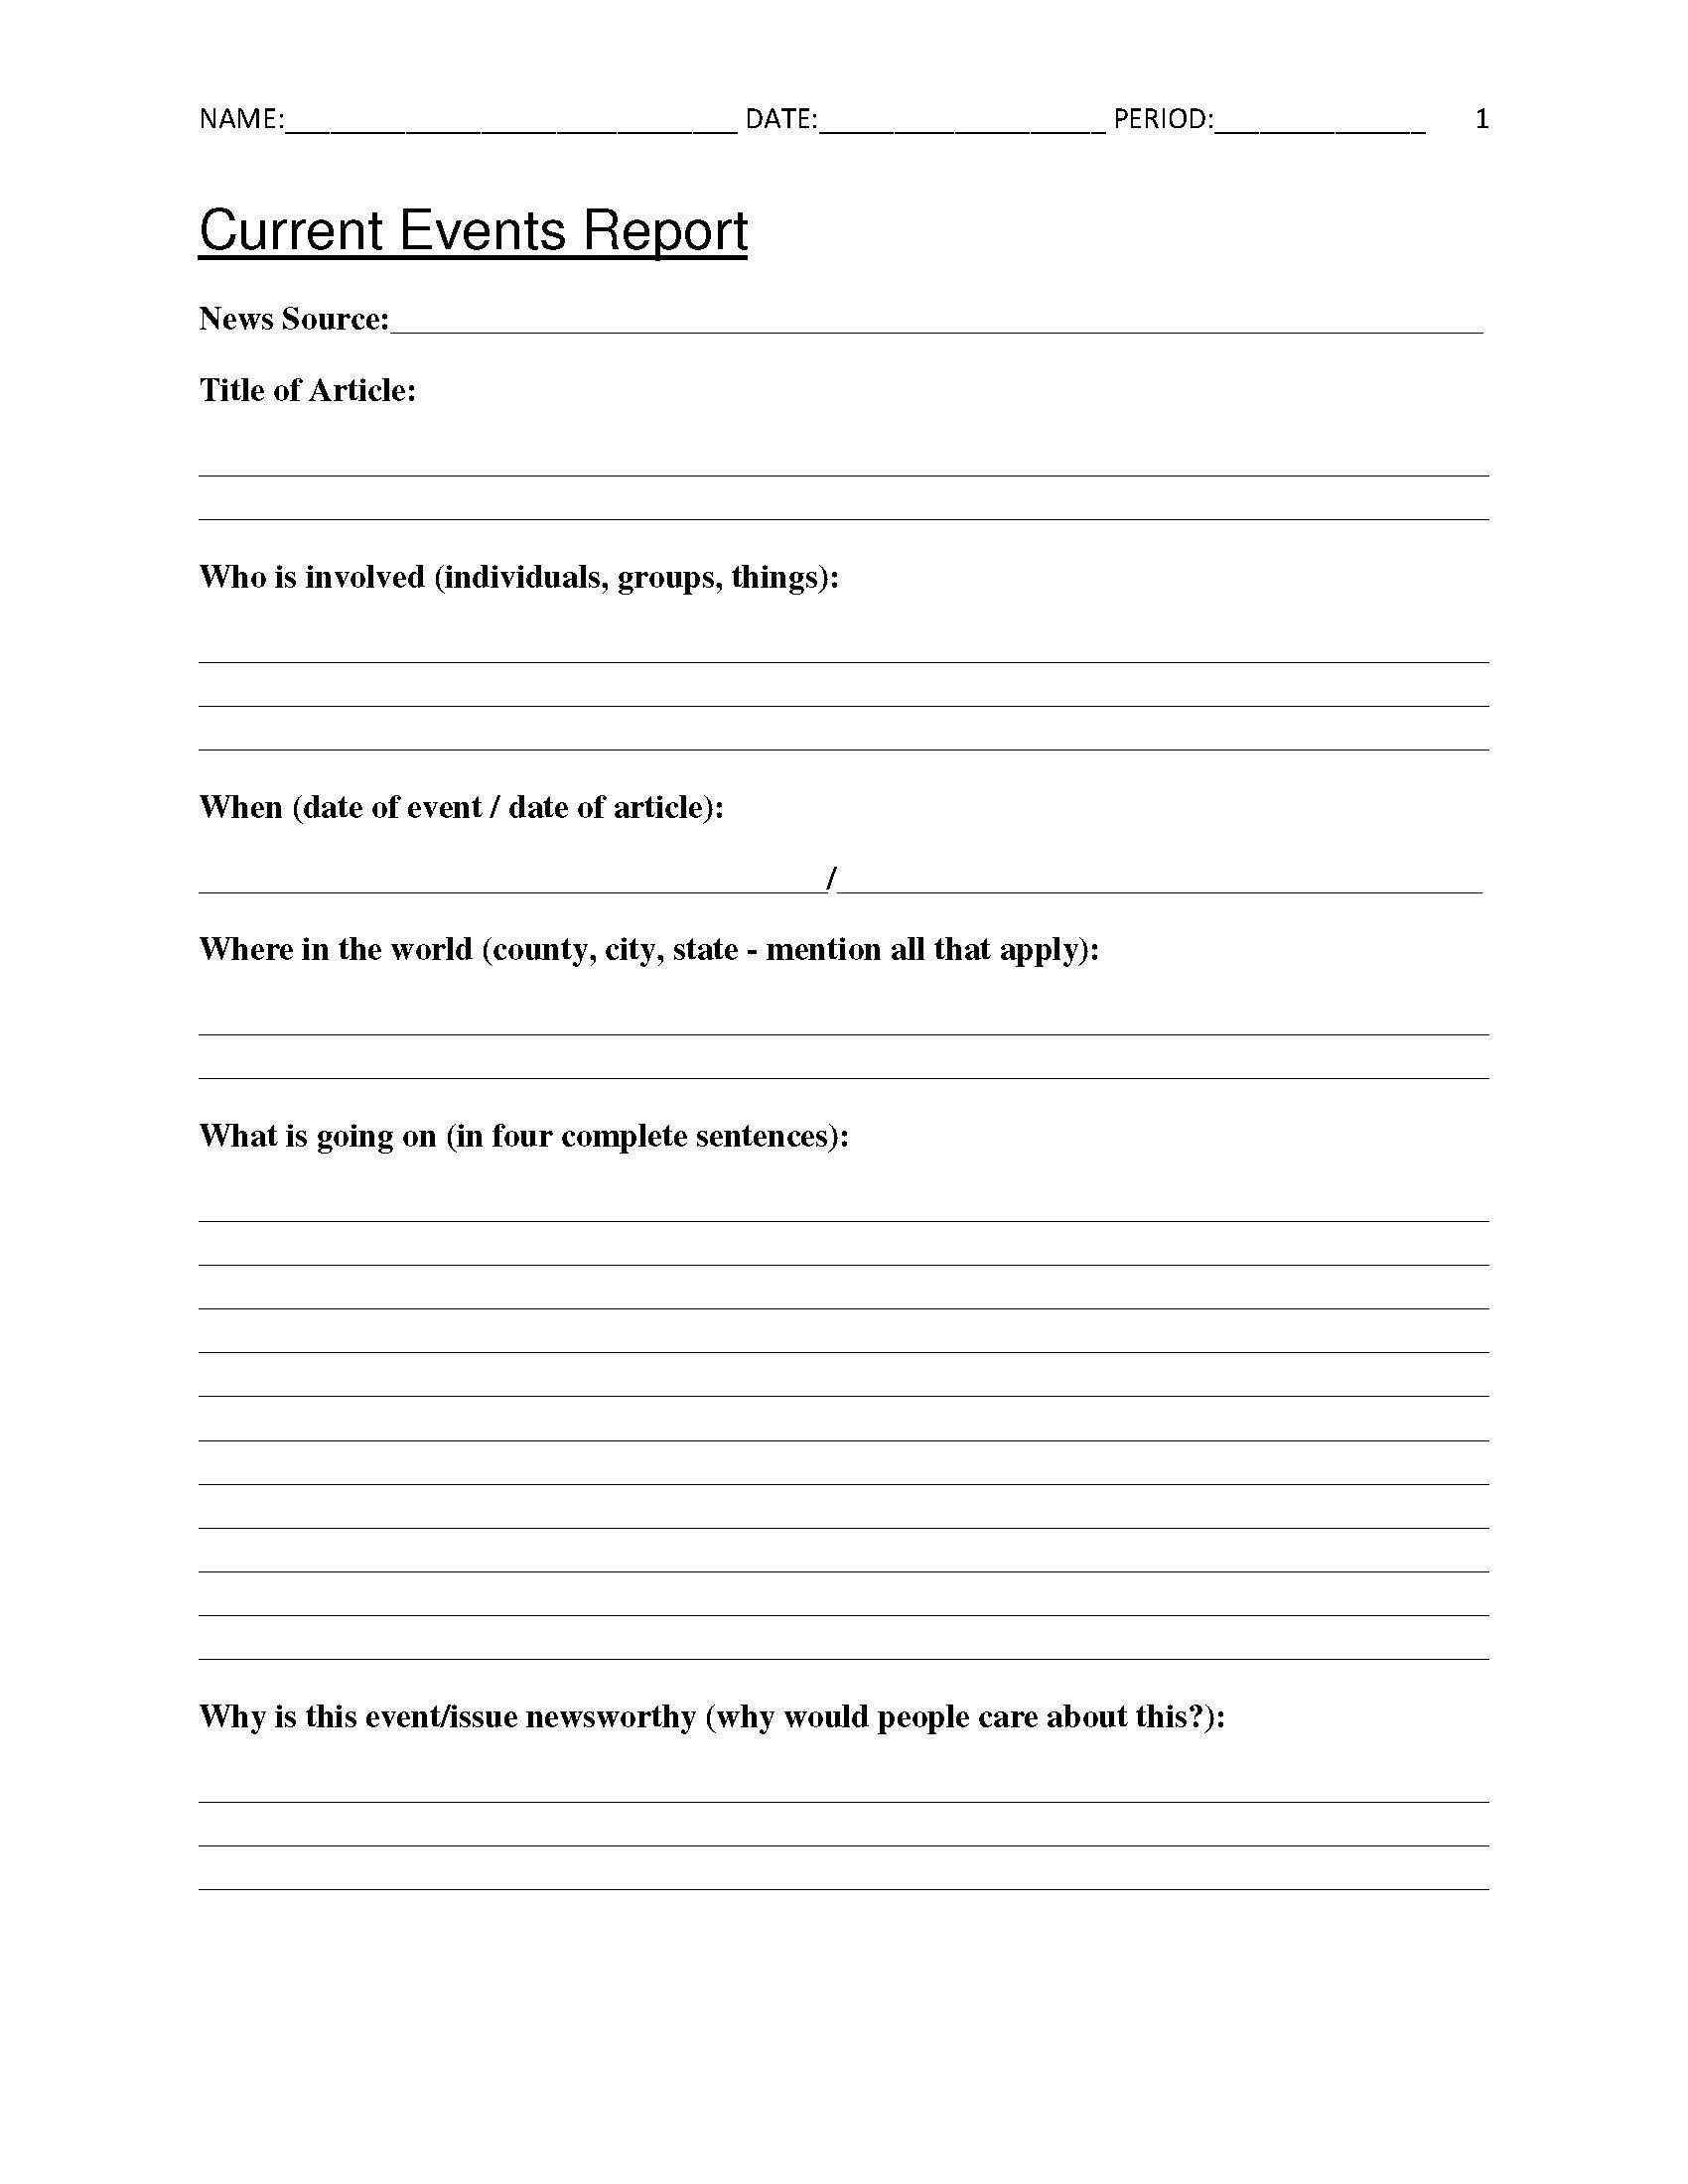 Free Current Events Report Worksheet For Classroom Teachers